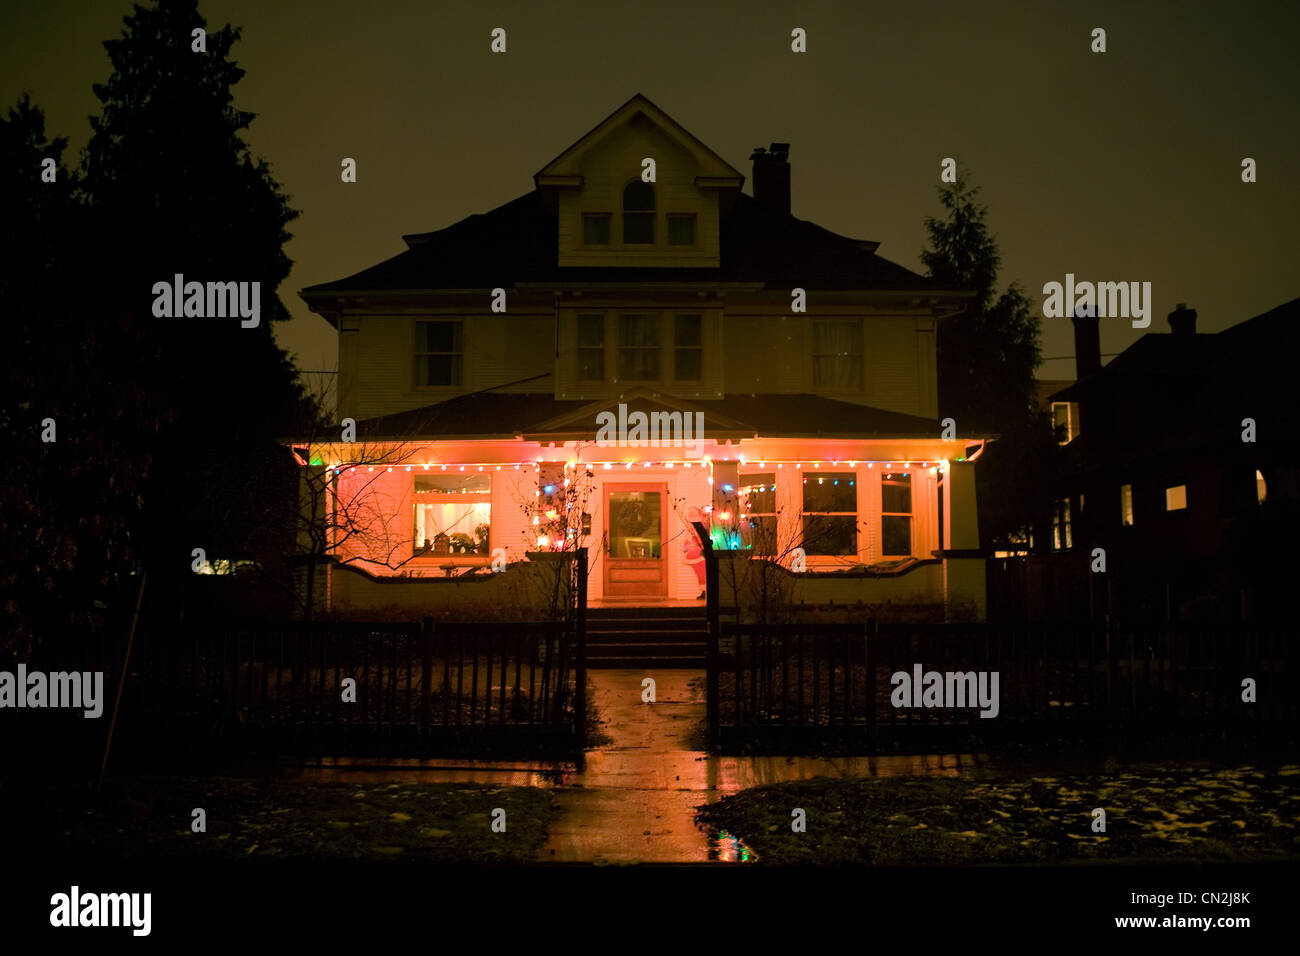 Christmas Lights On House At Night